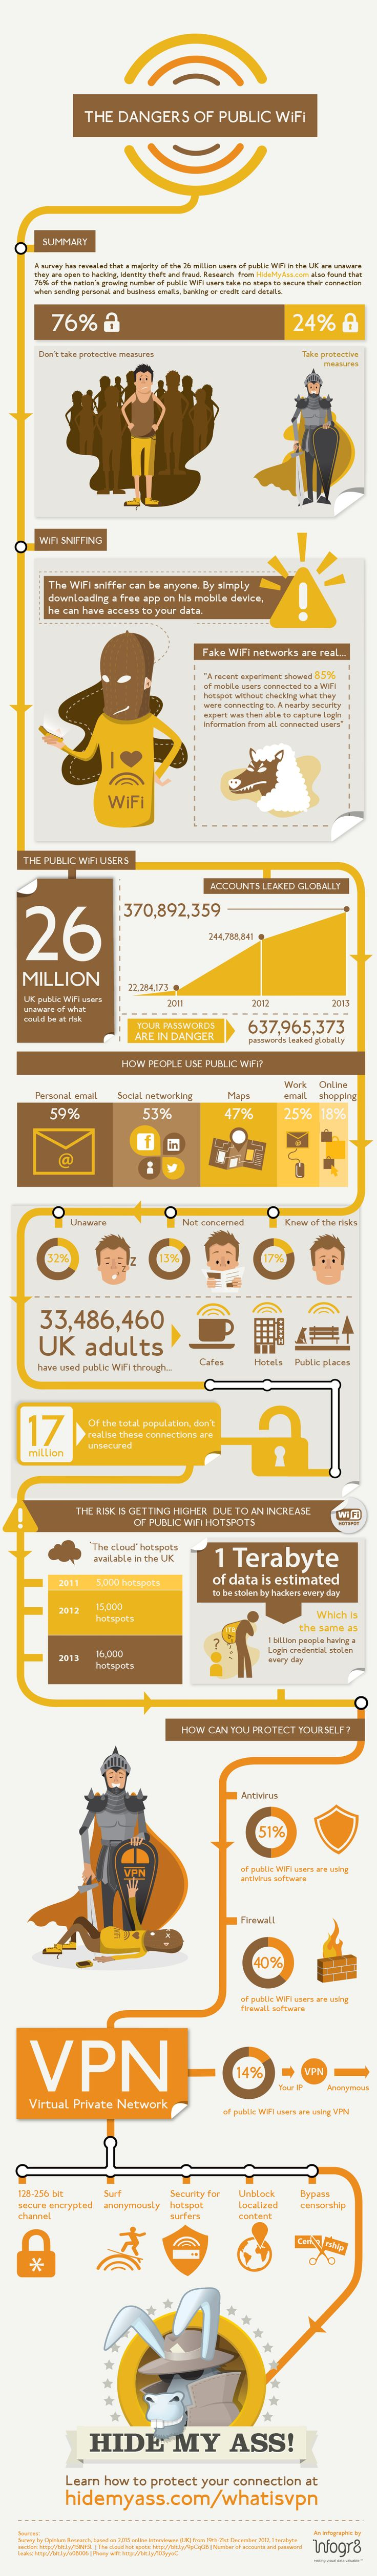 Did you know that the majority of 26 million public Wi-Fi users are unaware that they're open to hacking, identity theft and fraud?